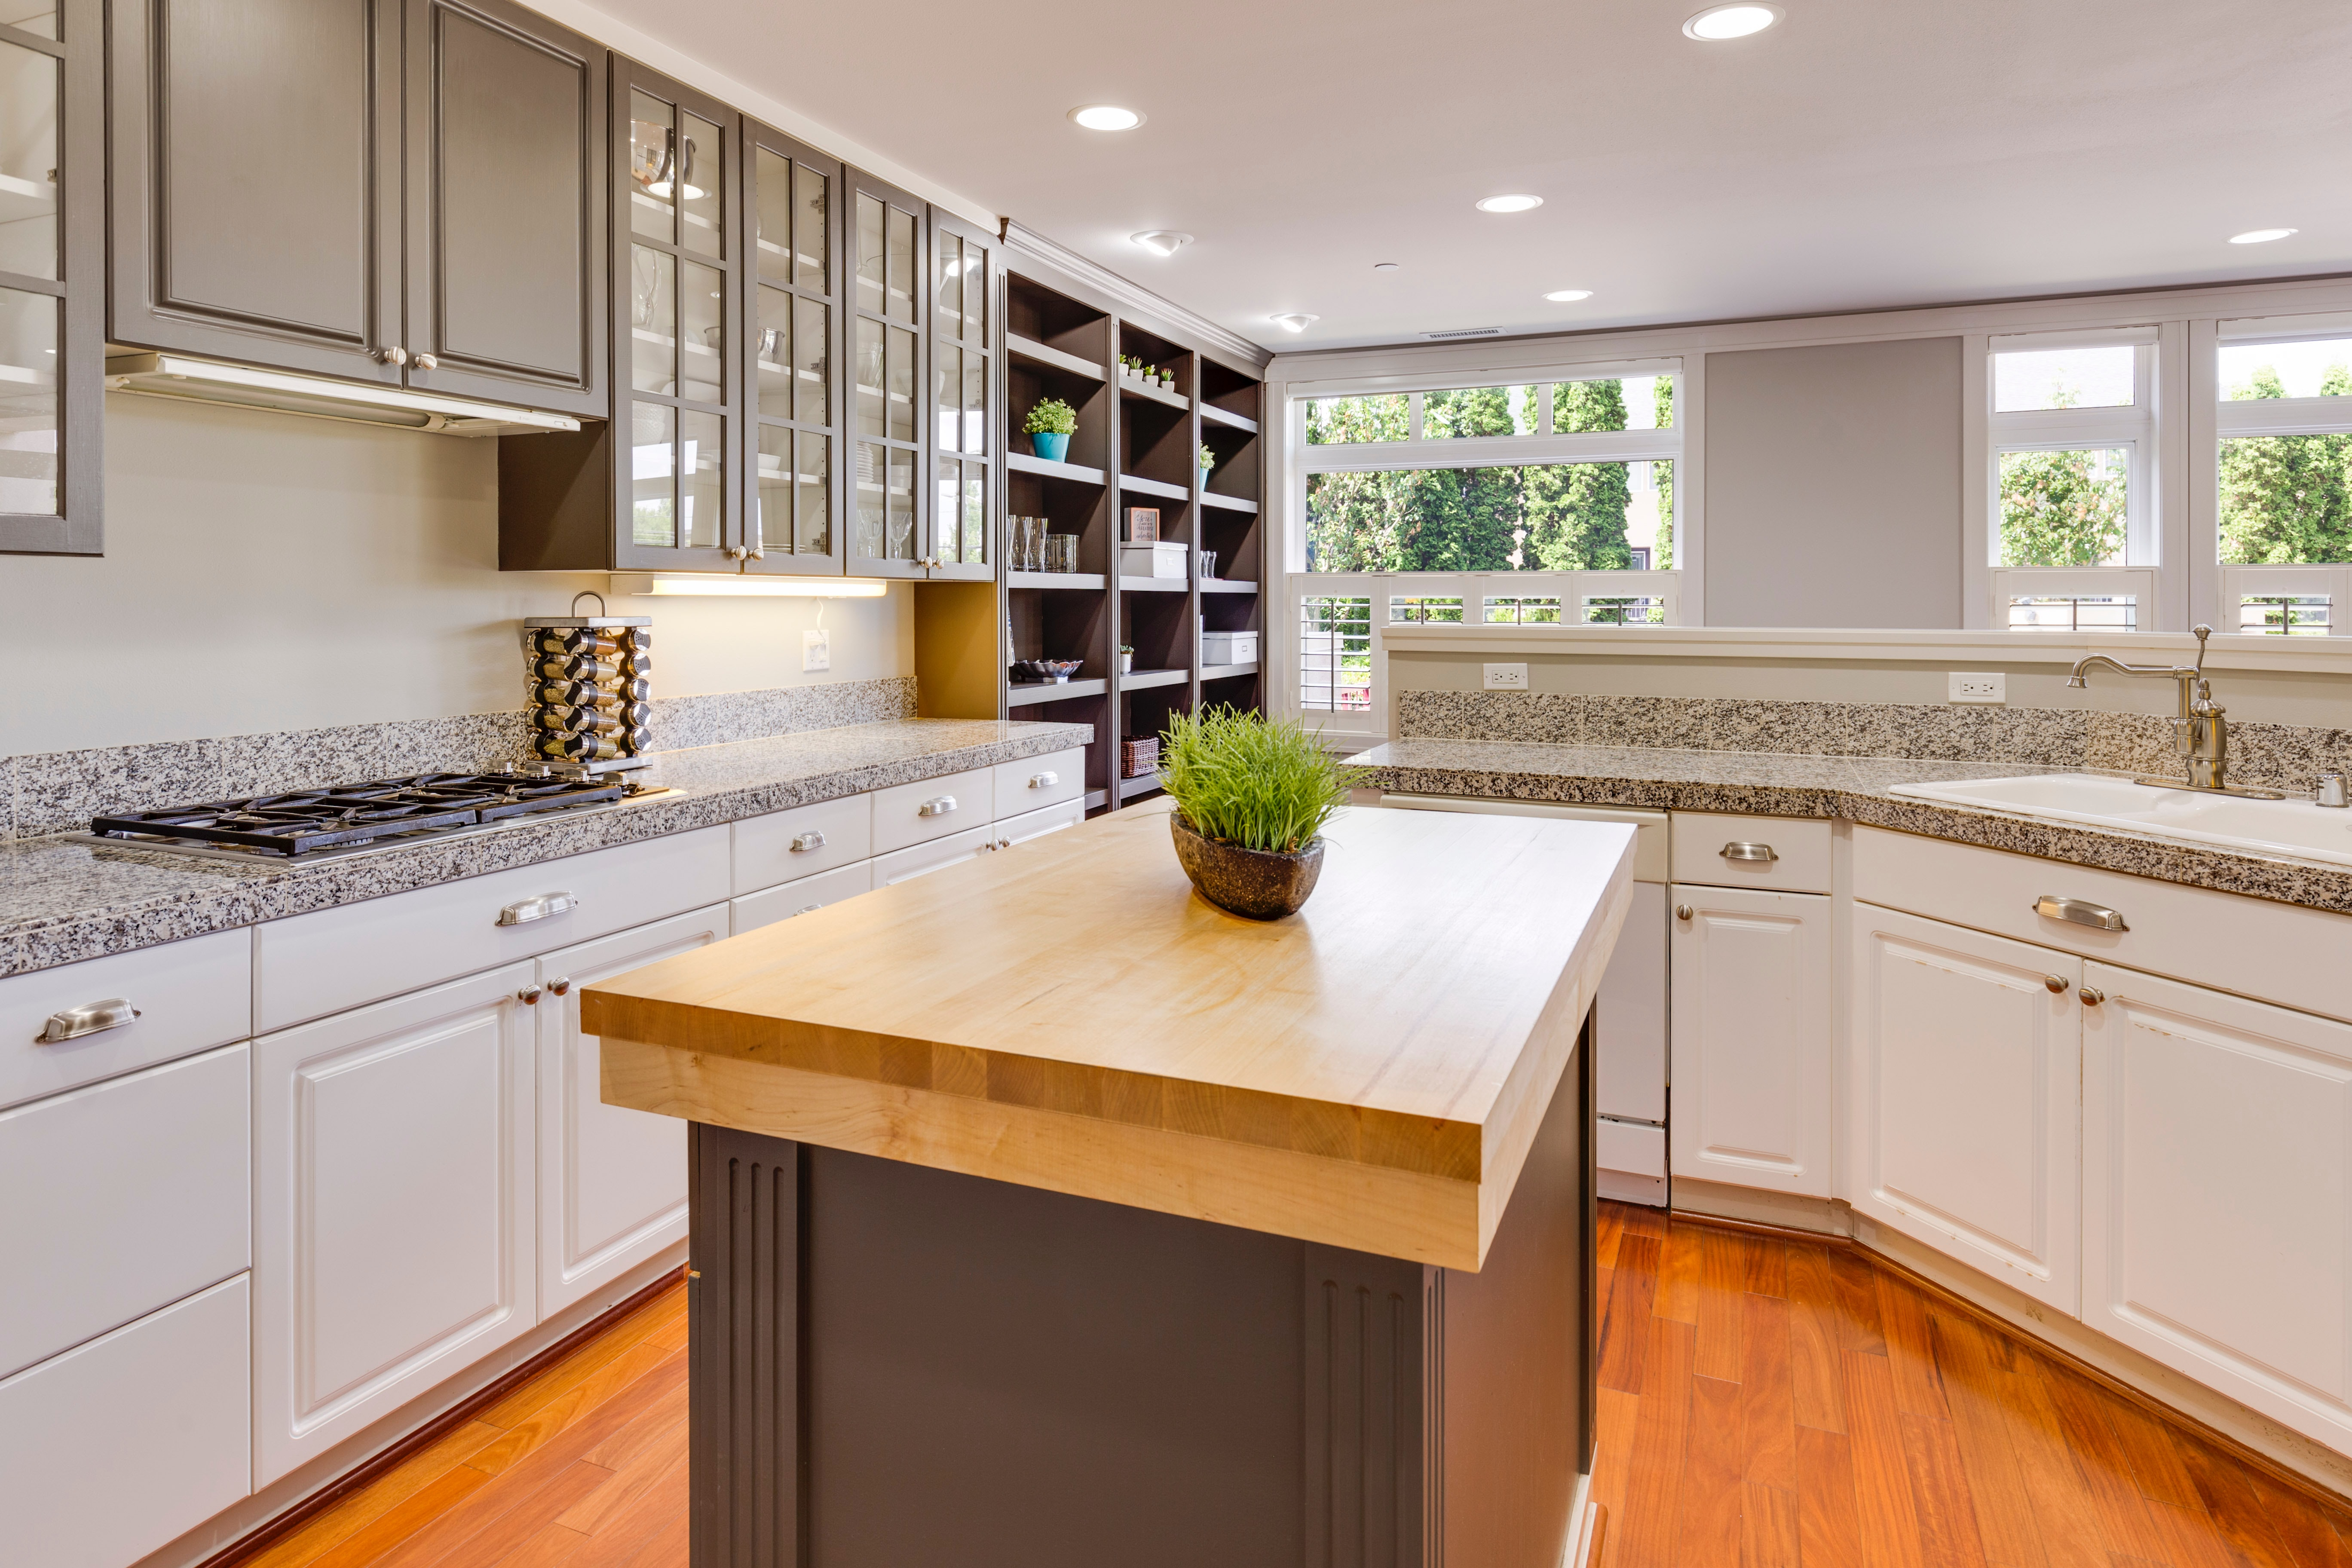 Top 5 Things to Consider Before Buying Wood Countertops